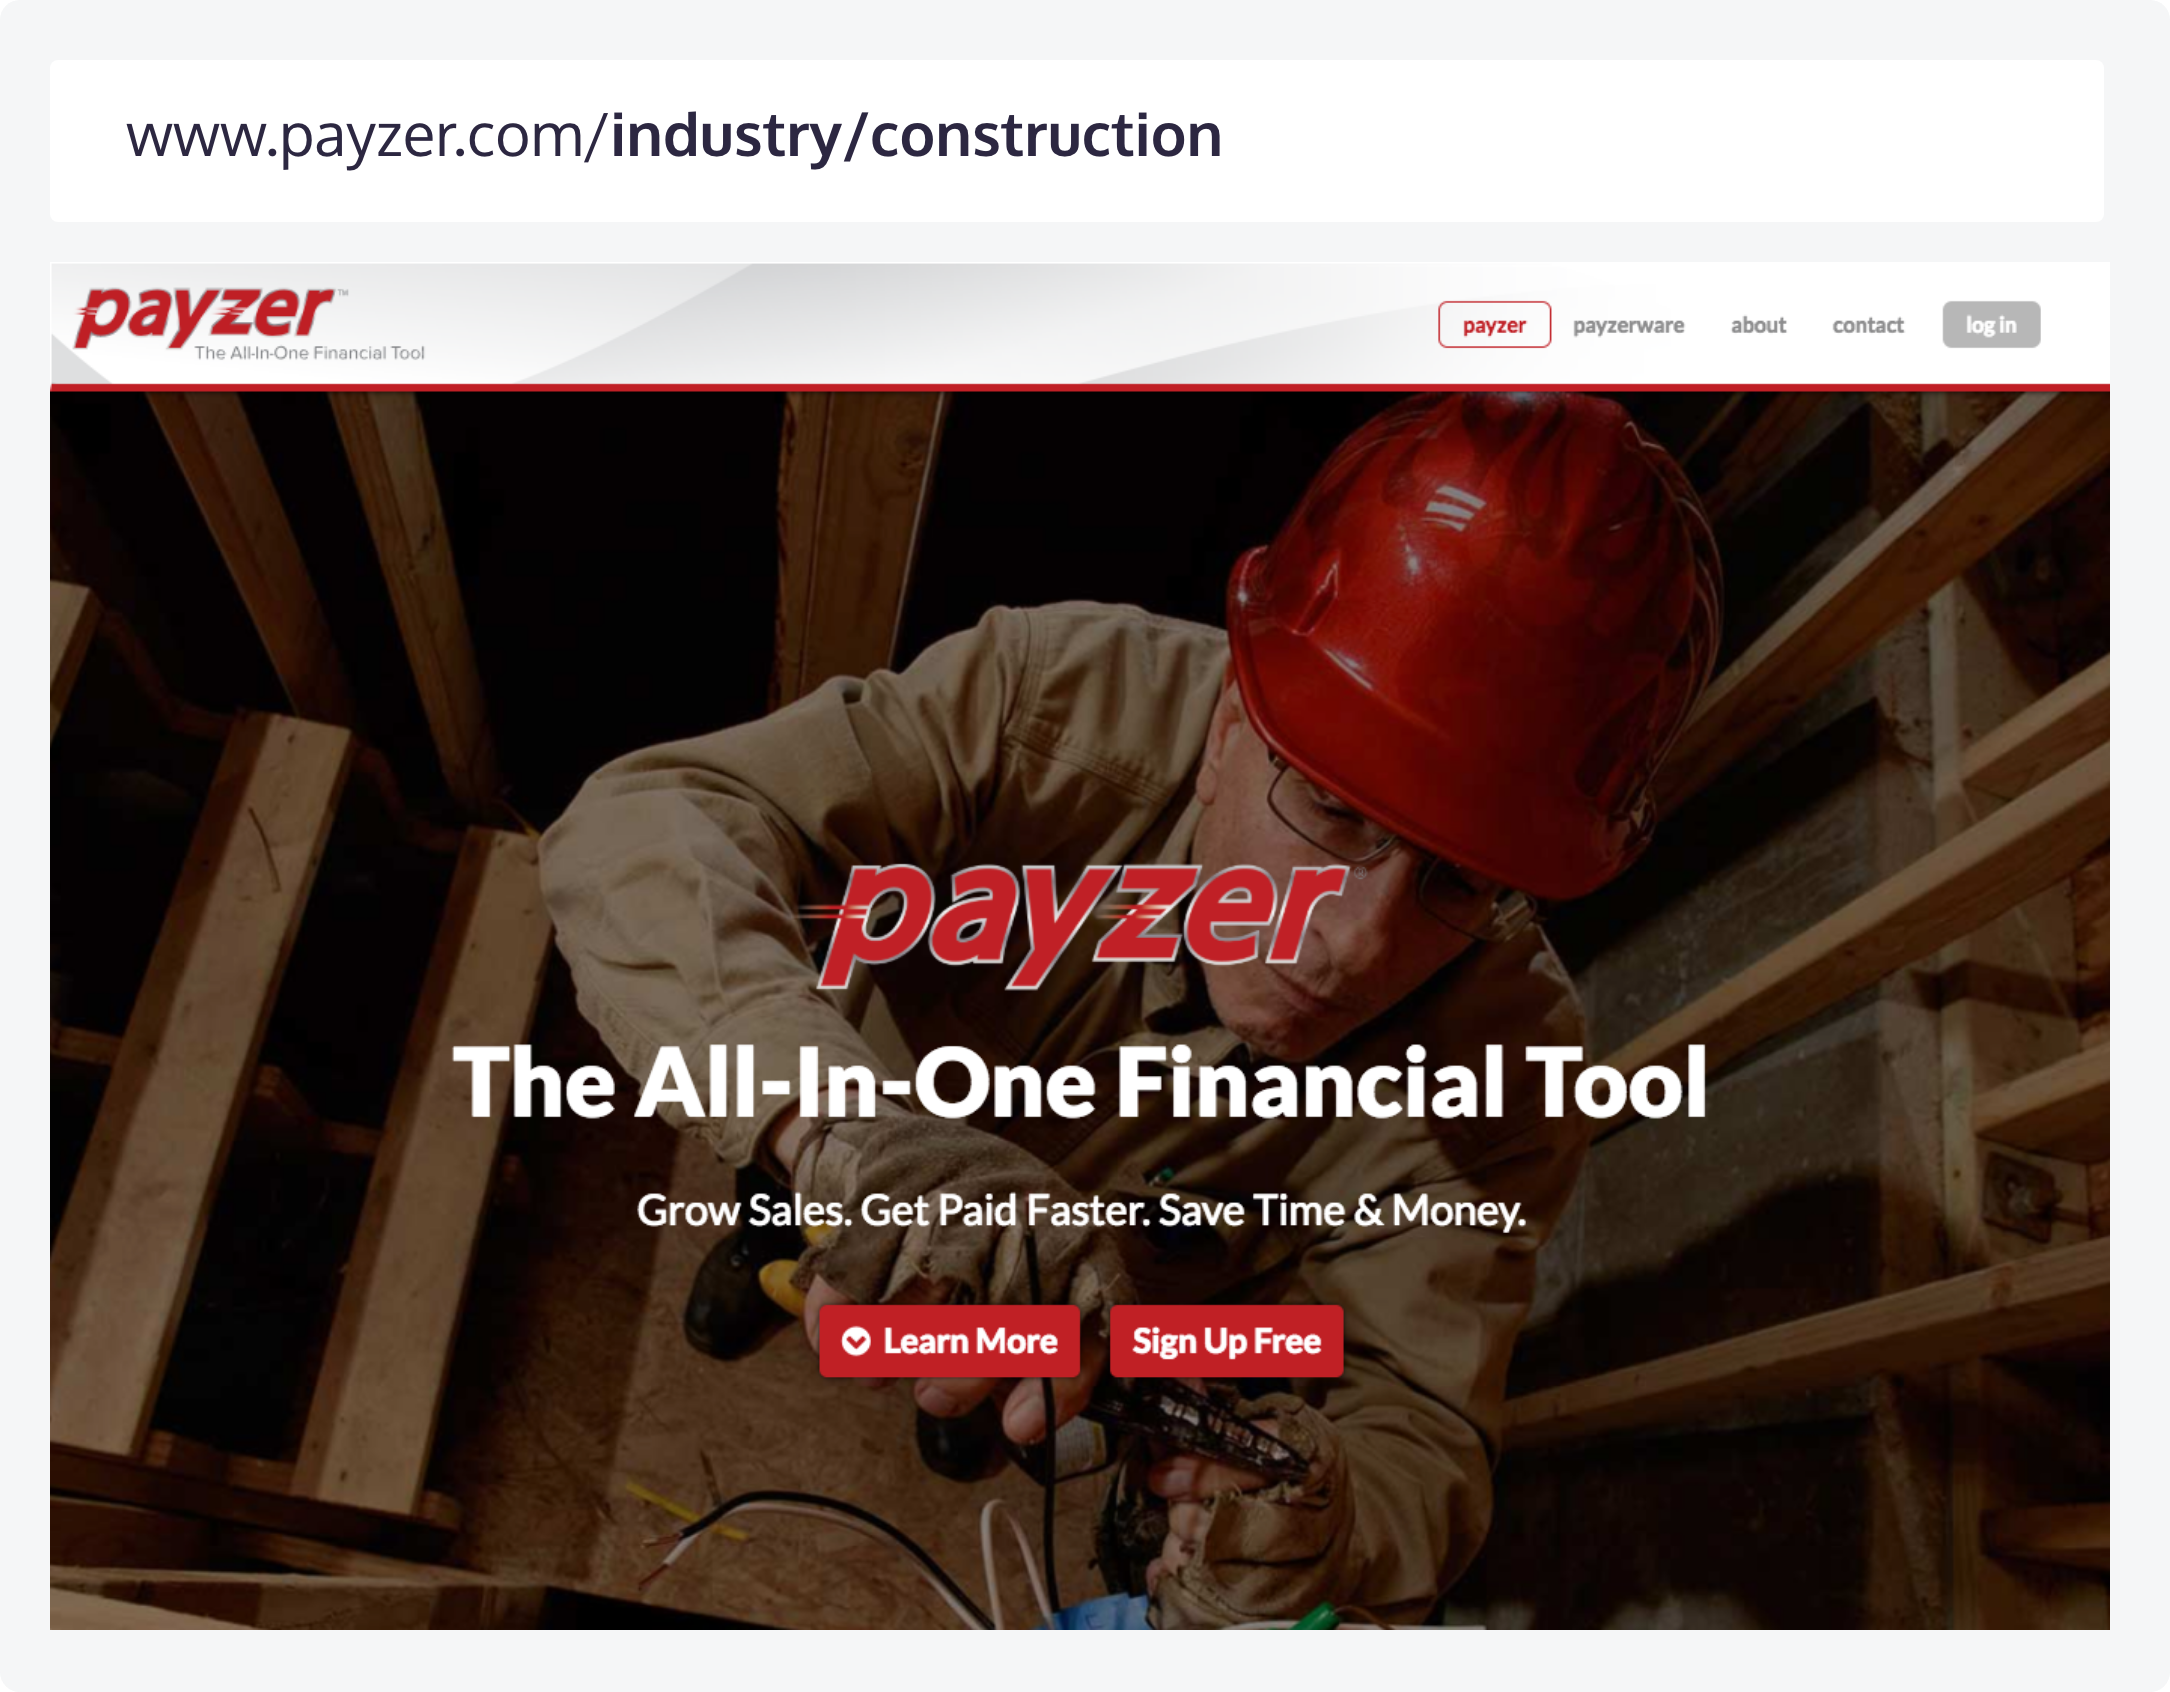 An industry specific page at Payzer and its corresponding URL